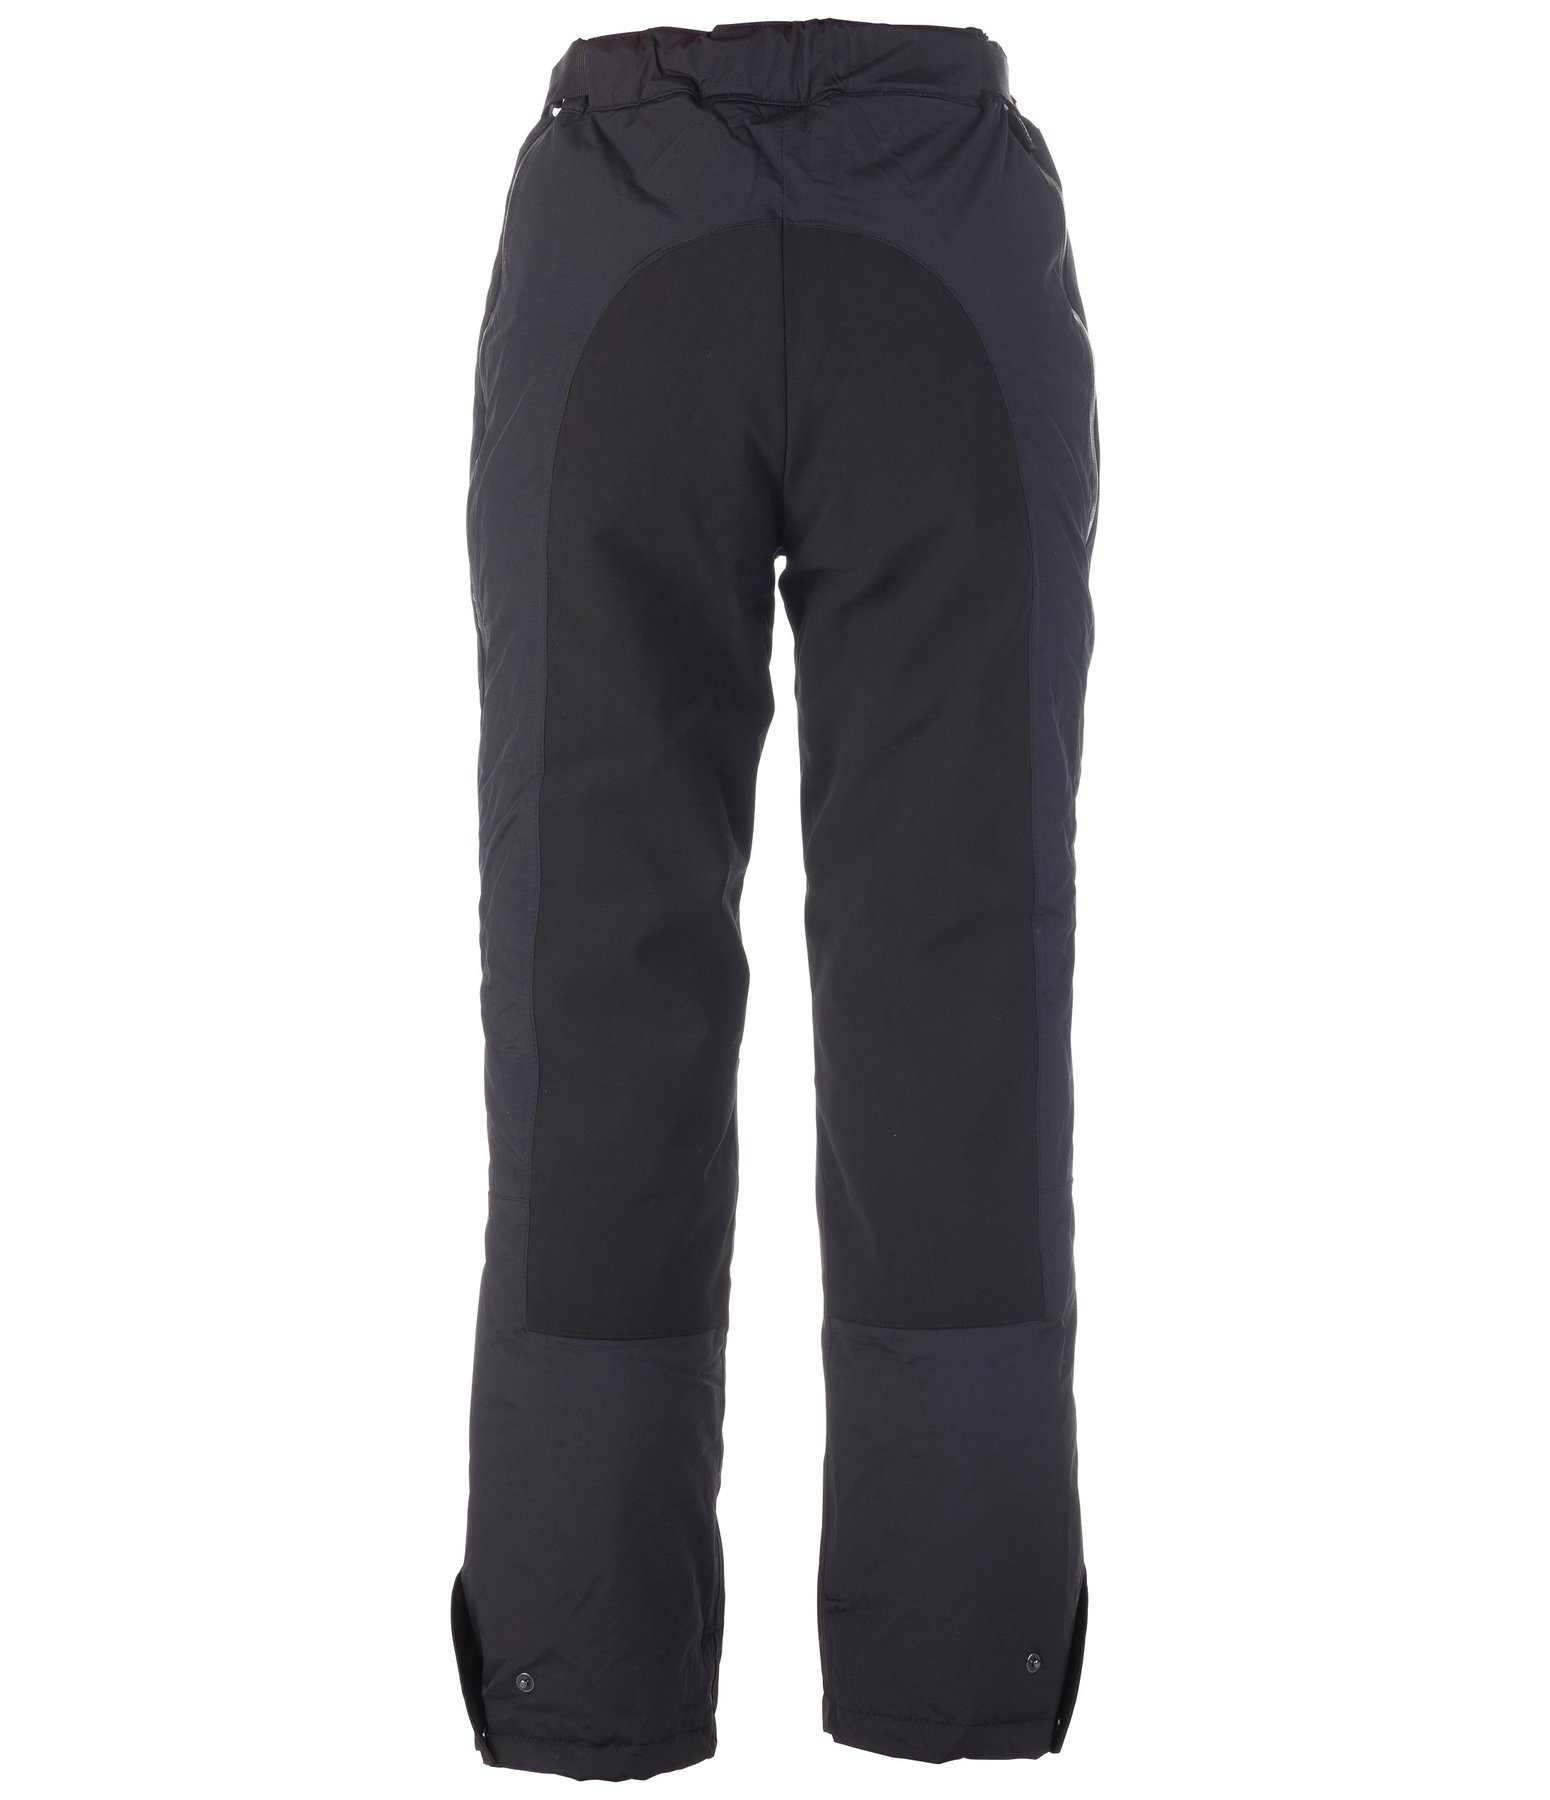 Children's Thermal Riding Overtrousers